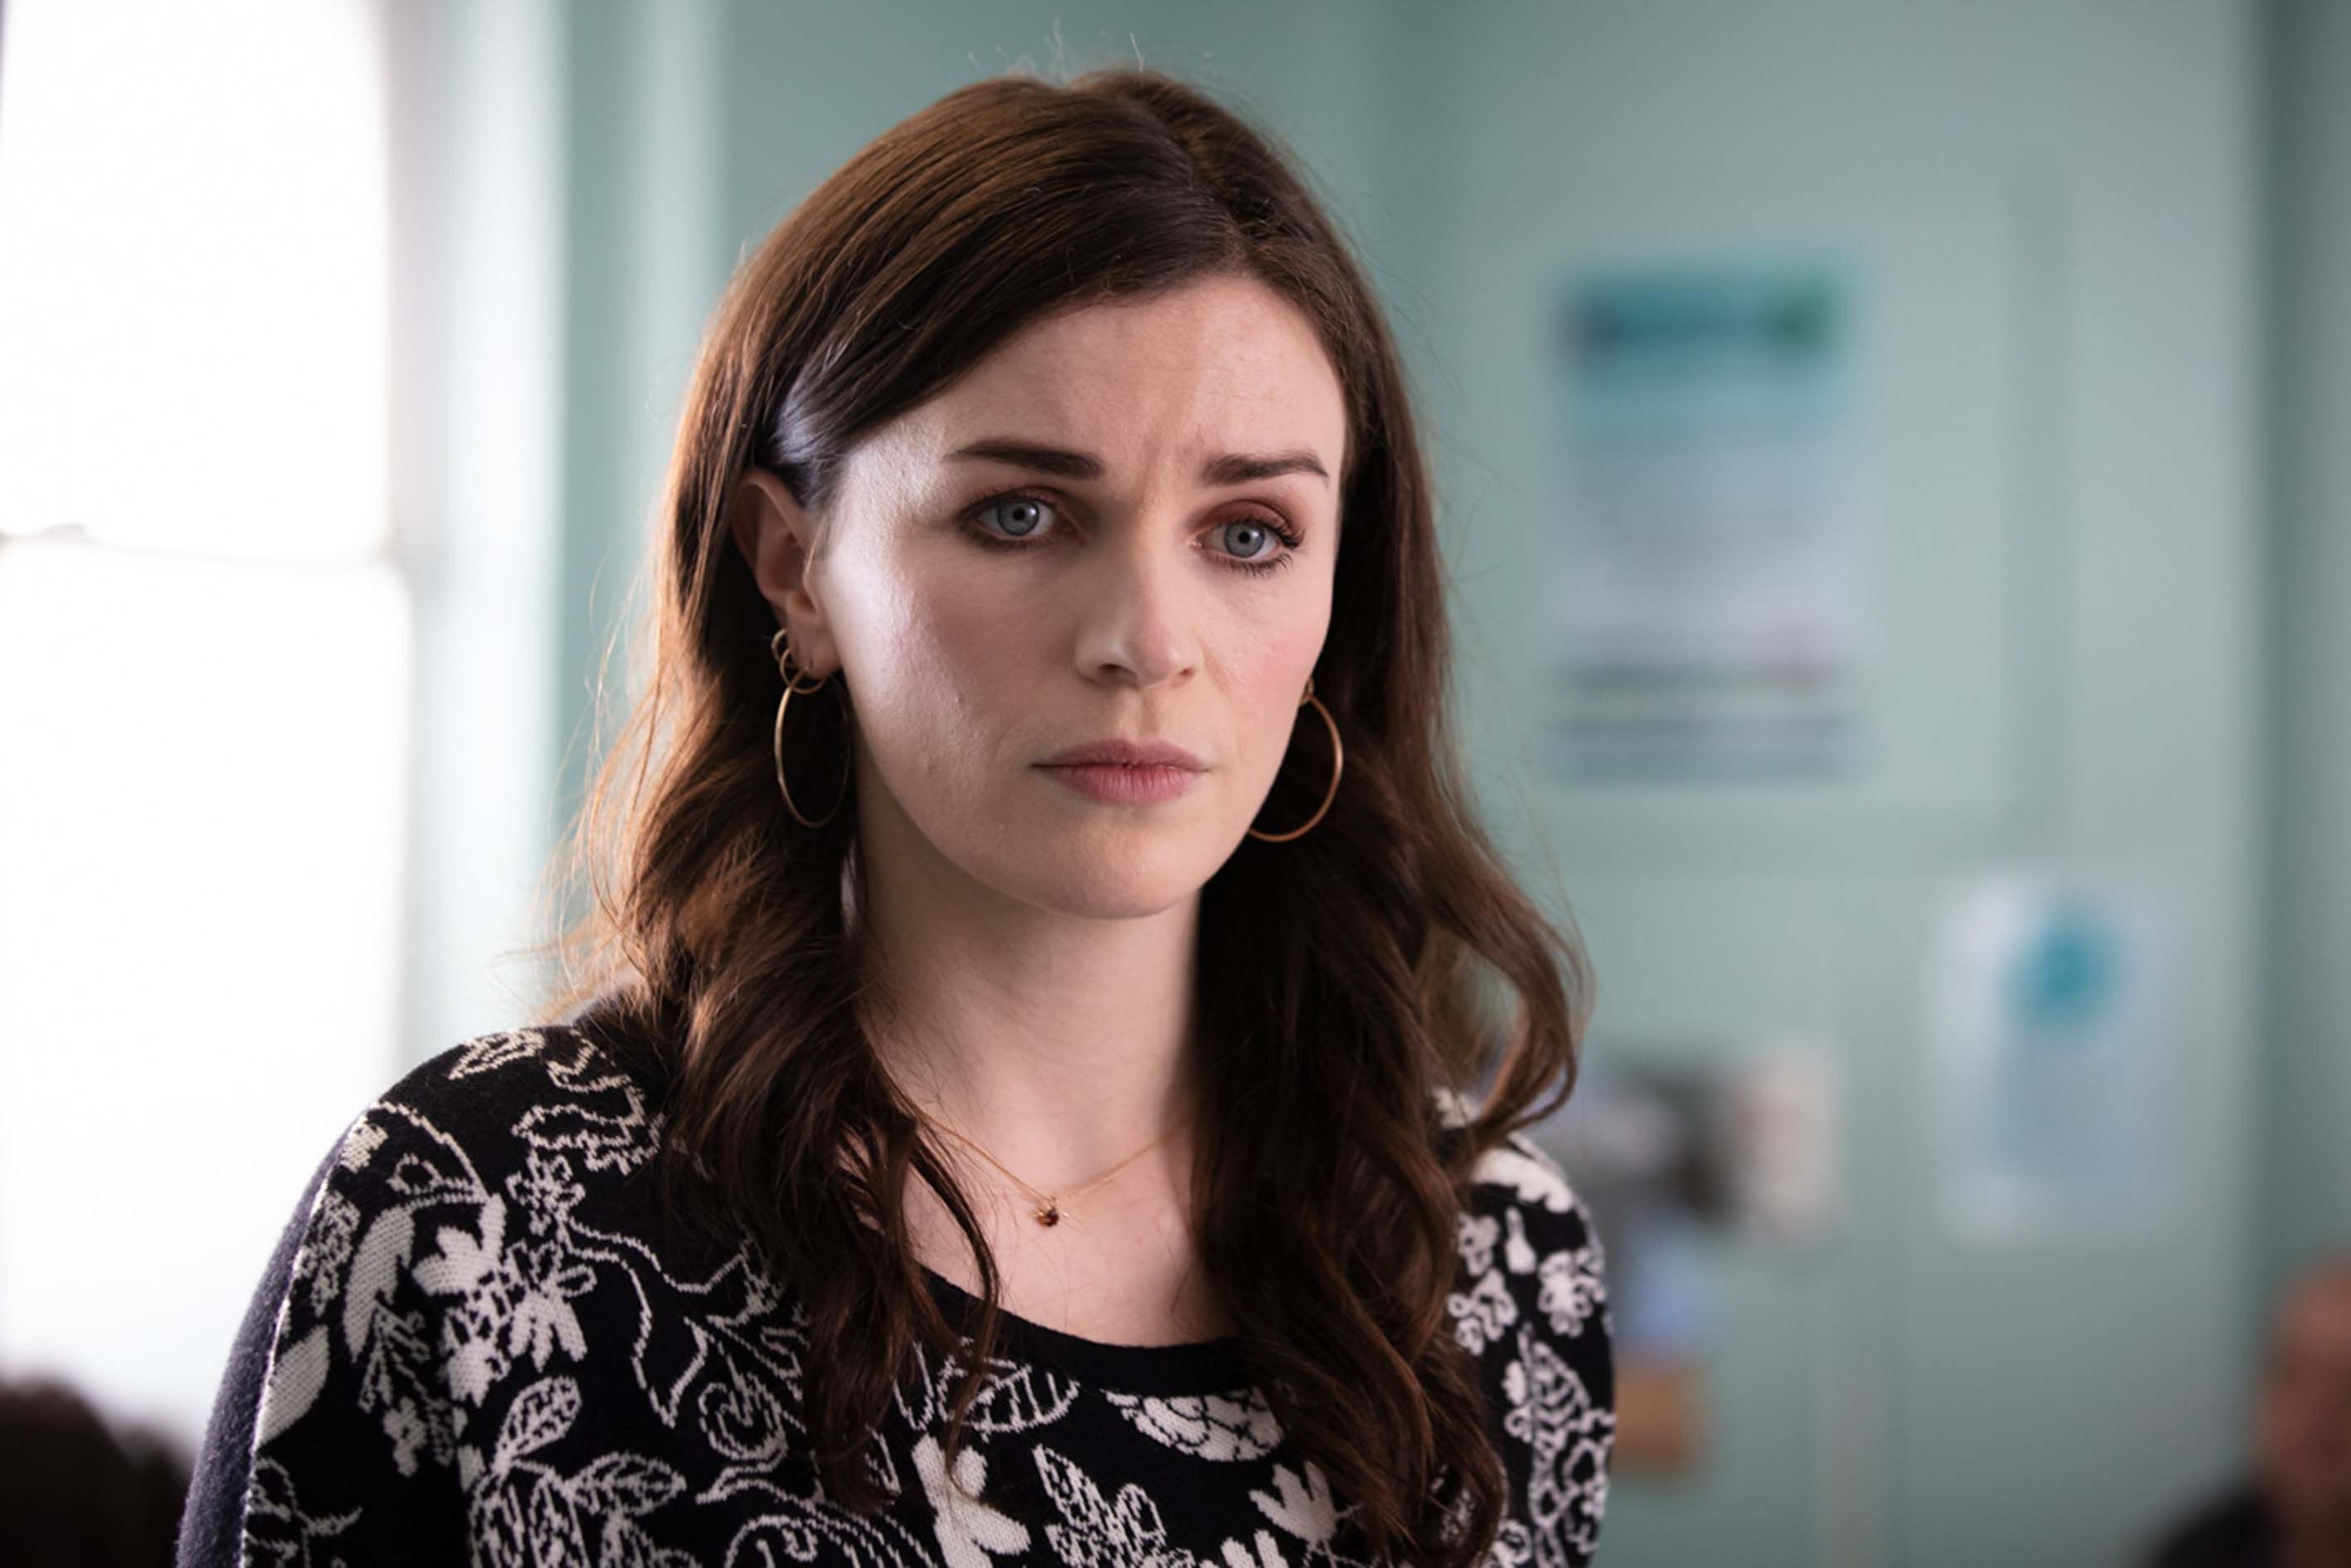 Aisling Bea explains why her Channel 4 comedy This Way Up owes a lot to Derry Girls